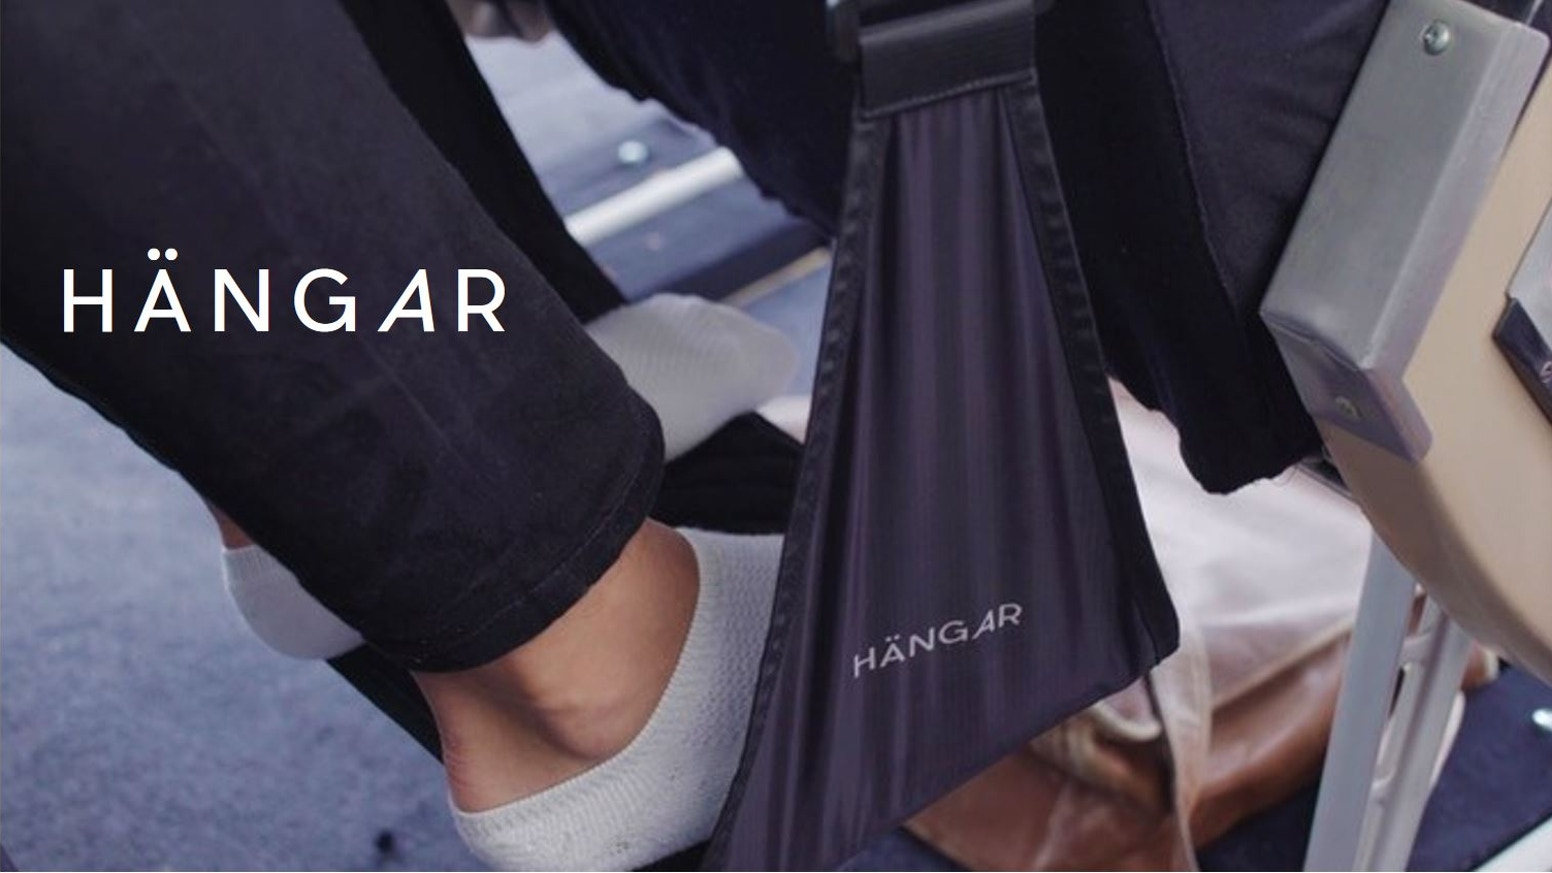 Revolutionize the way you travel – HÄNGAR let's you travel first class without the cost